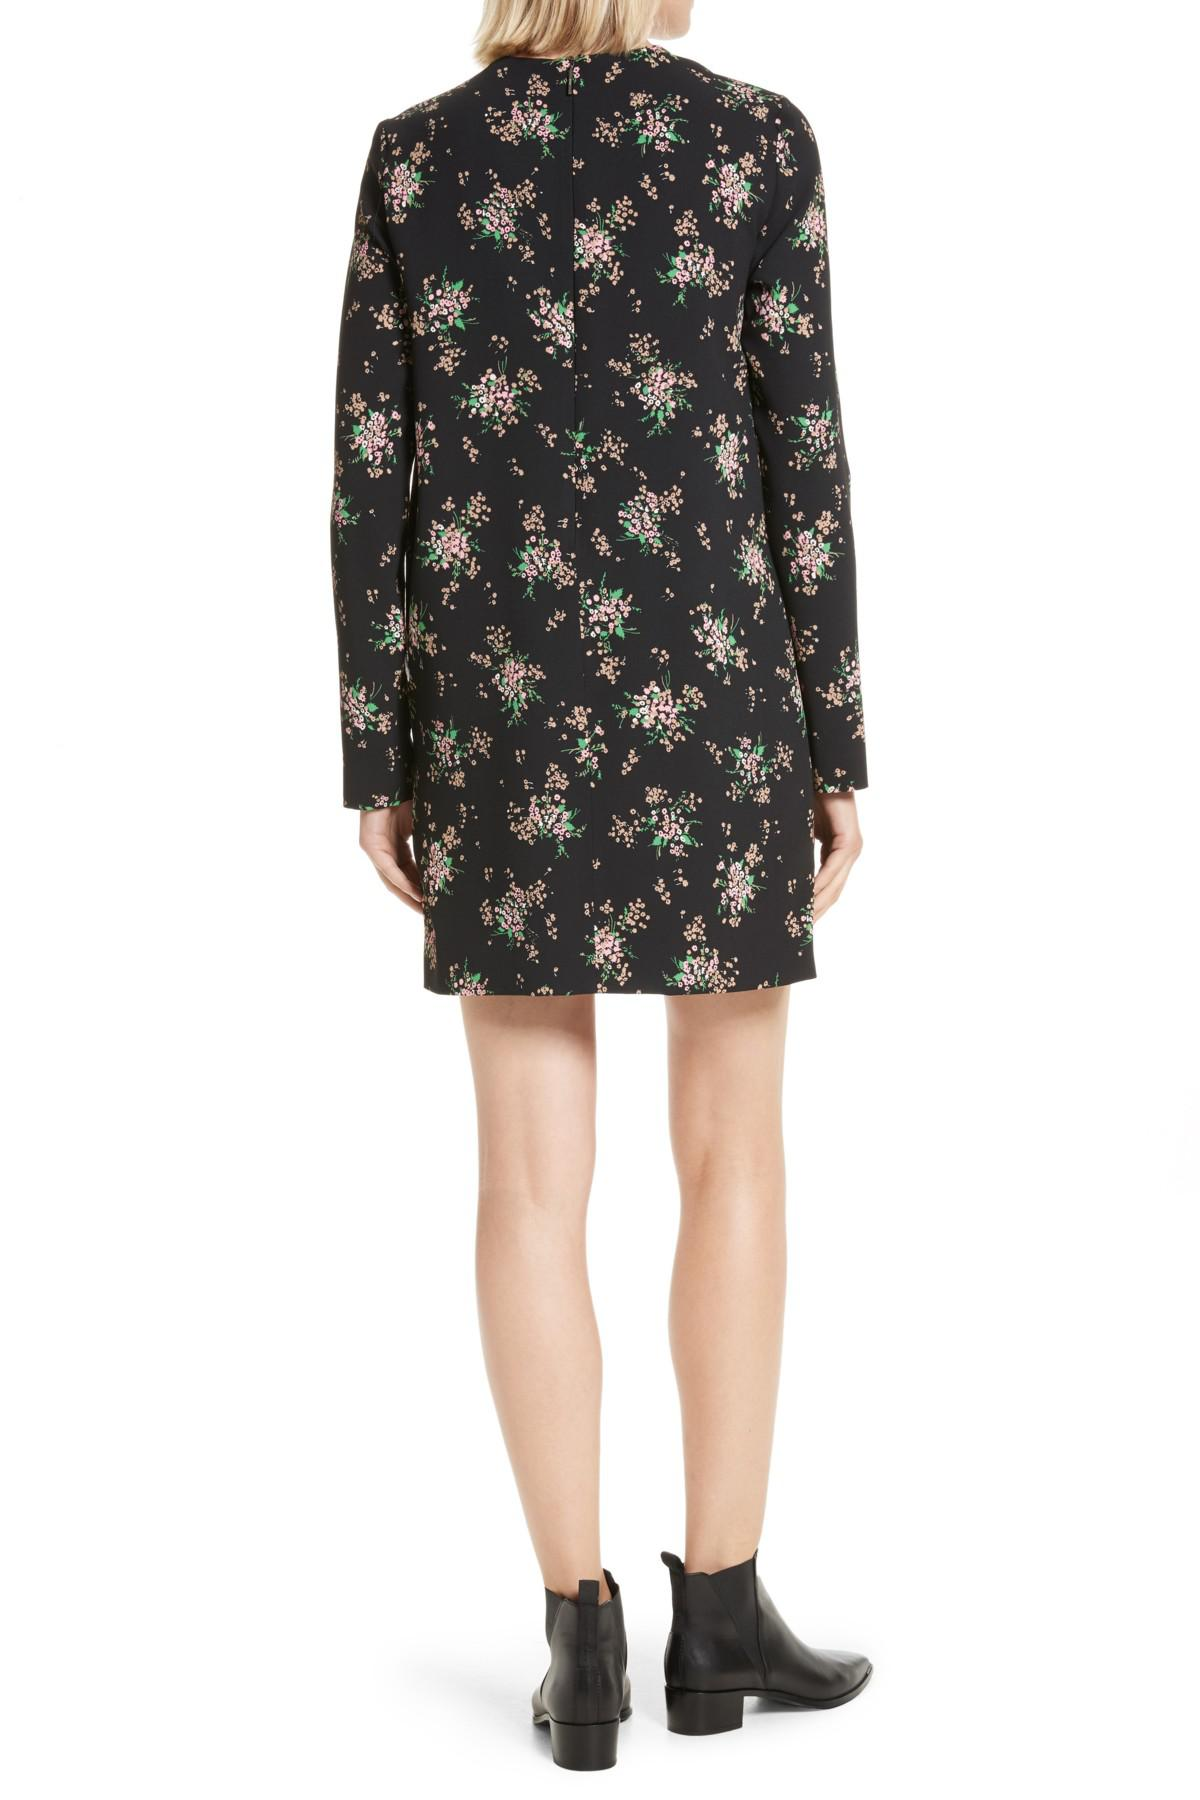 Msgm Woman Ostritch Feather-trimmed Floral-print Crepe Mini Dress Black Size 40 Msgm Free Shipping Sneakernews Buy Cheap Footlocker Pictures Cheap Sale For Sale Authentic mP8orFTQAo